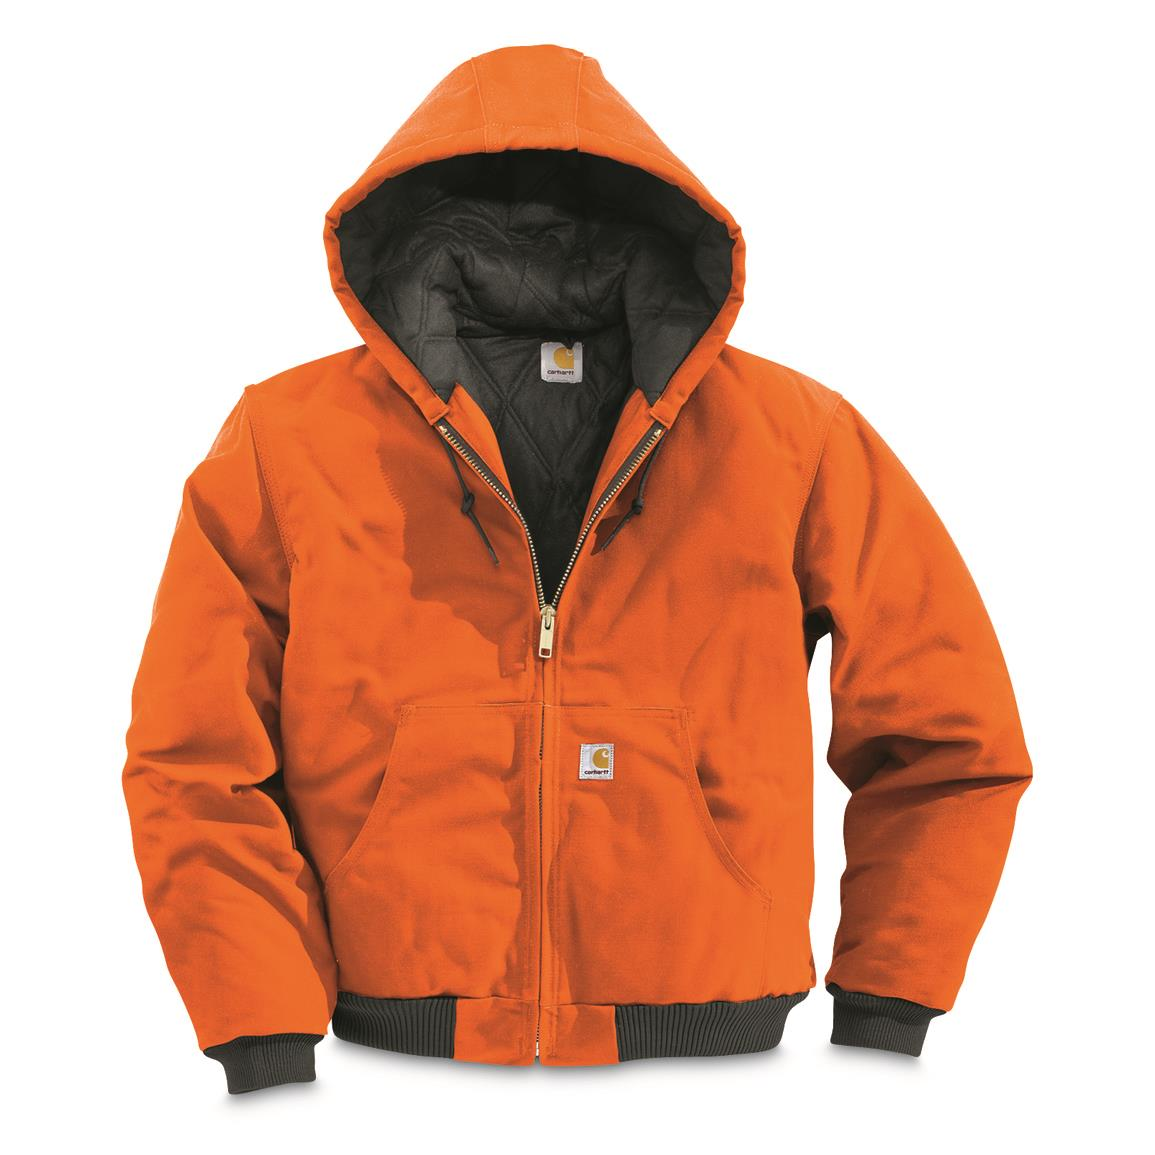 Carhartt Men's Quilted Flannel-Lined Active Jacket, Blaze Orange